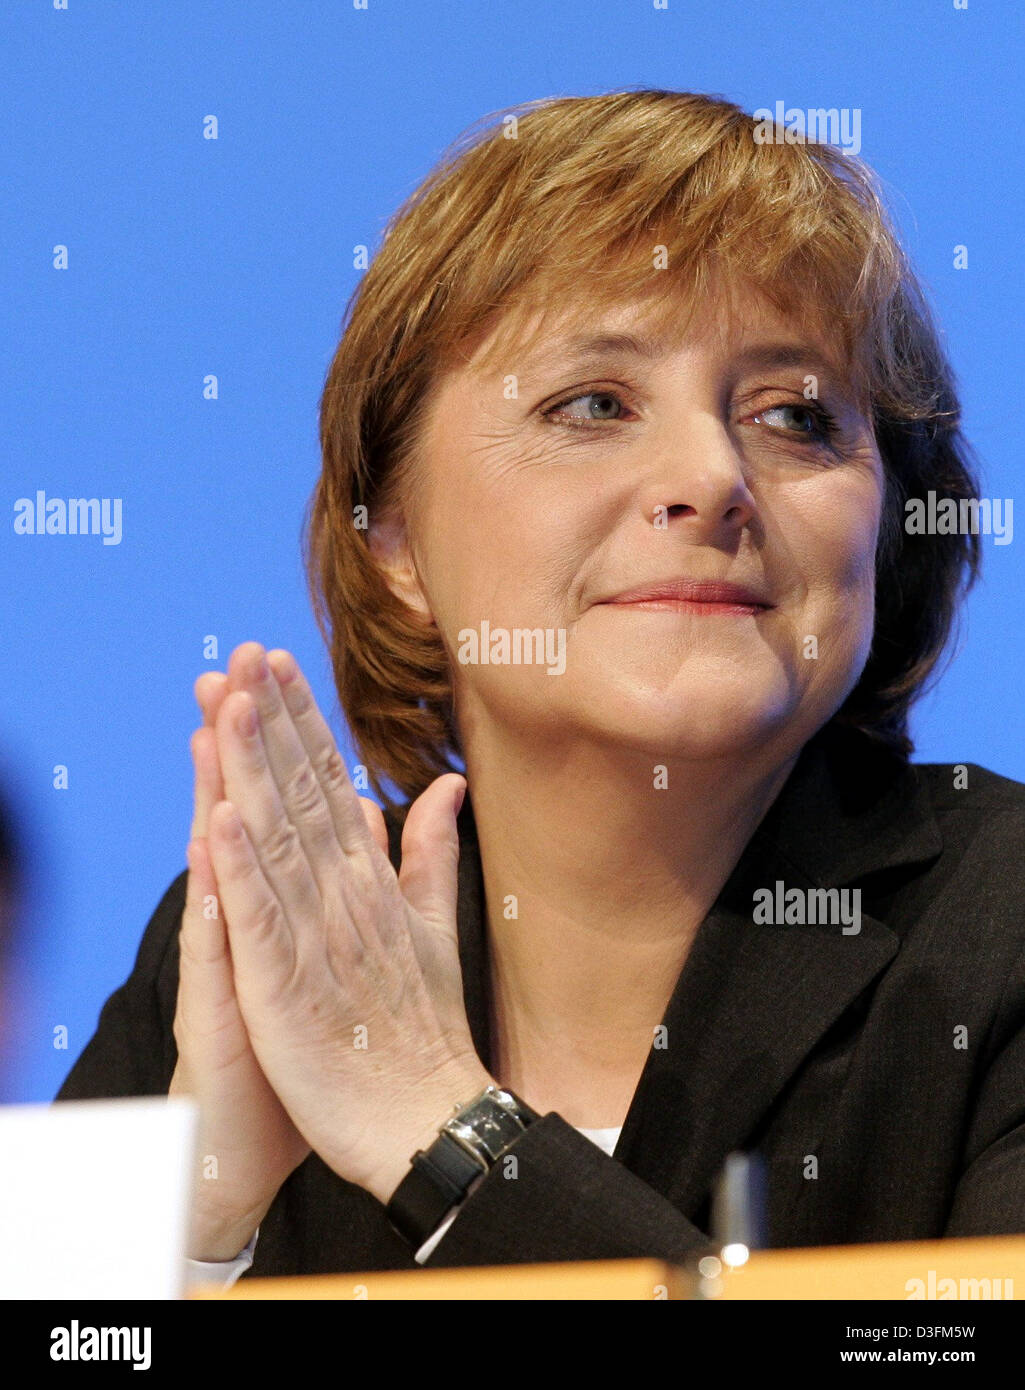 (dpa) - The photo shows Angela Merkel, Leader of the German Christian Democratic Union (CDU), during the CDU's 18th party congress in Duesseldorf, Germany, 6 December 2004. The party congress took place under the motto 'Deutschlands Chancen nutzen' (to use Germany's chances). Stock Photo